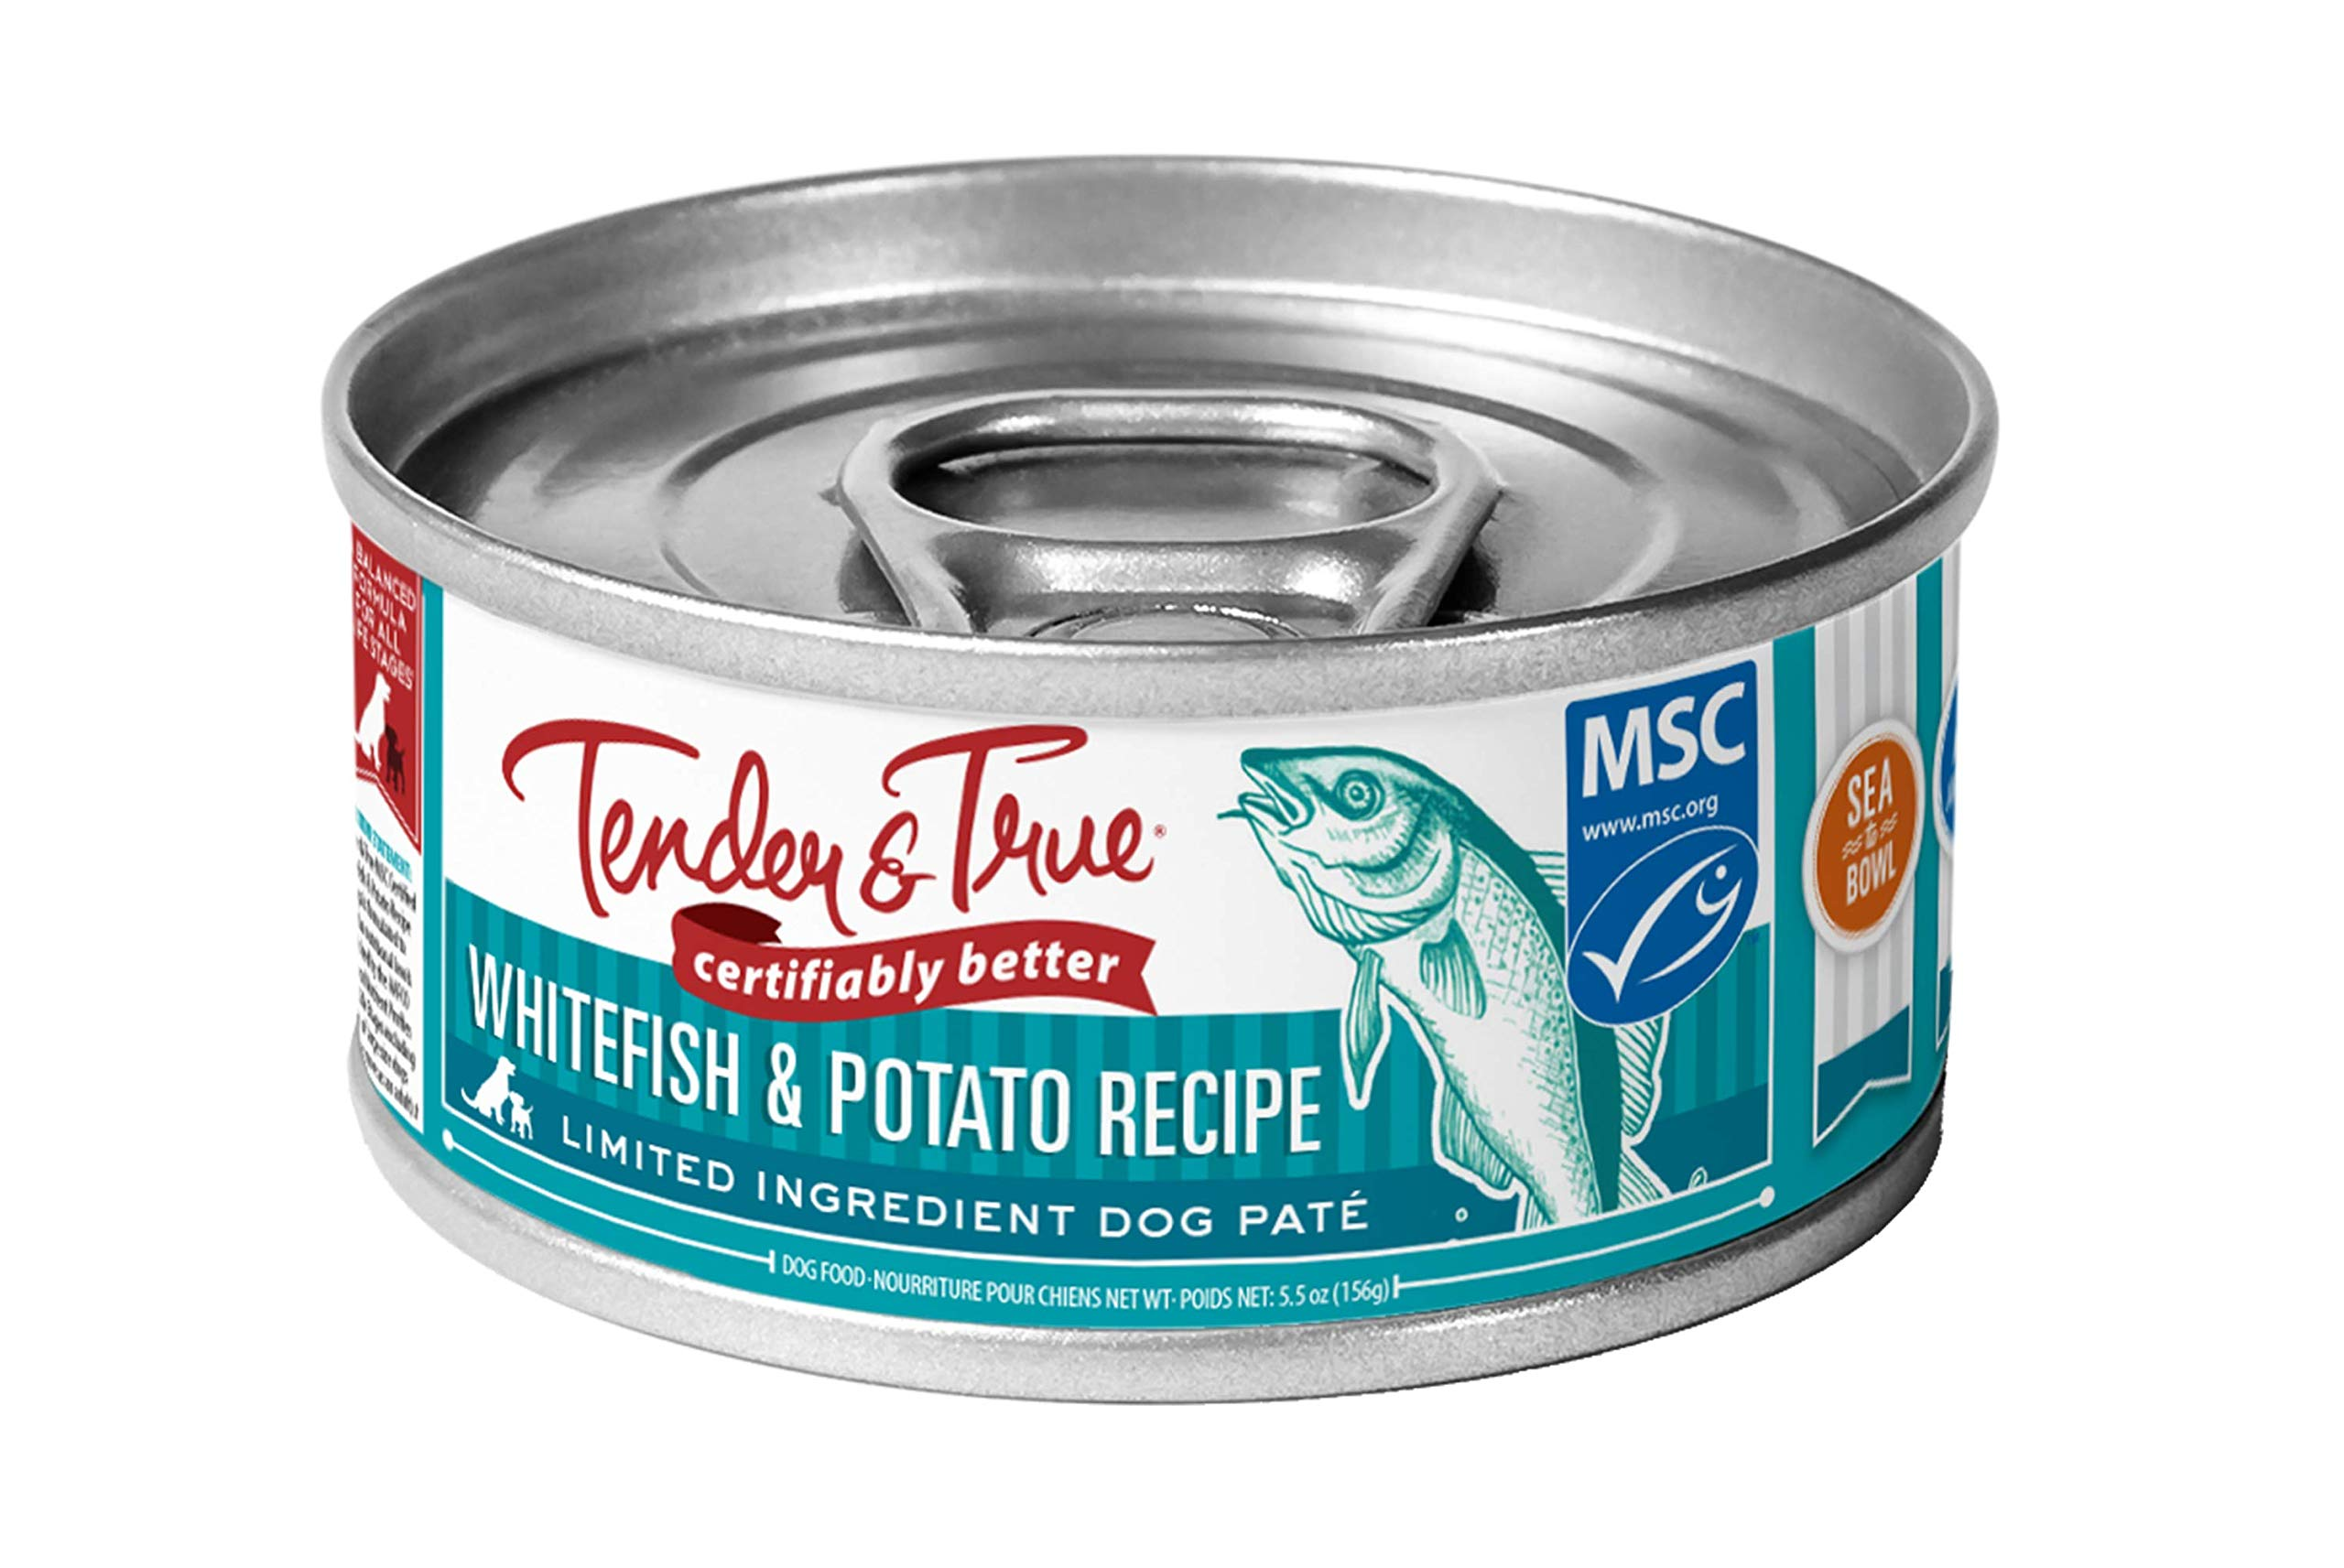 Tender & True Ocean Whitefish & Potato Recipe Canned Dog Food, 5.5 oz, Case of 24 by Tender & True Pet Nutrition